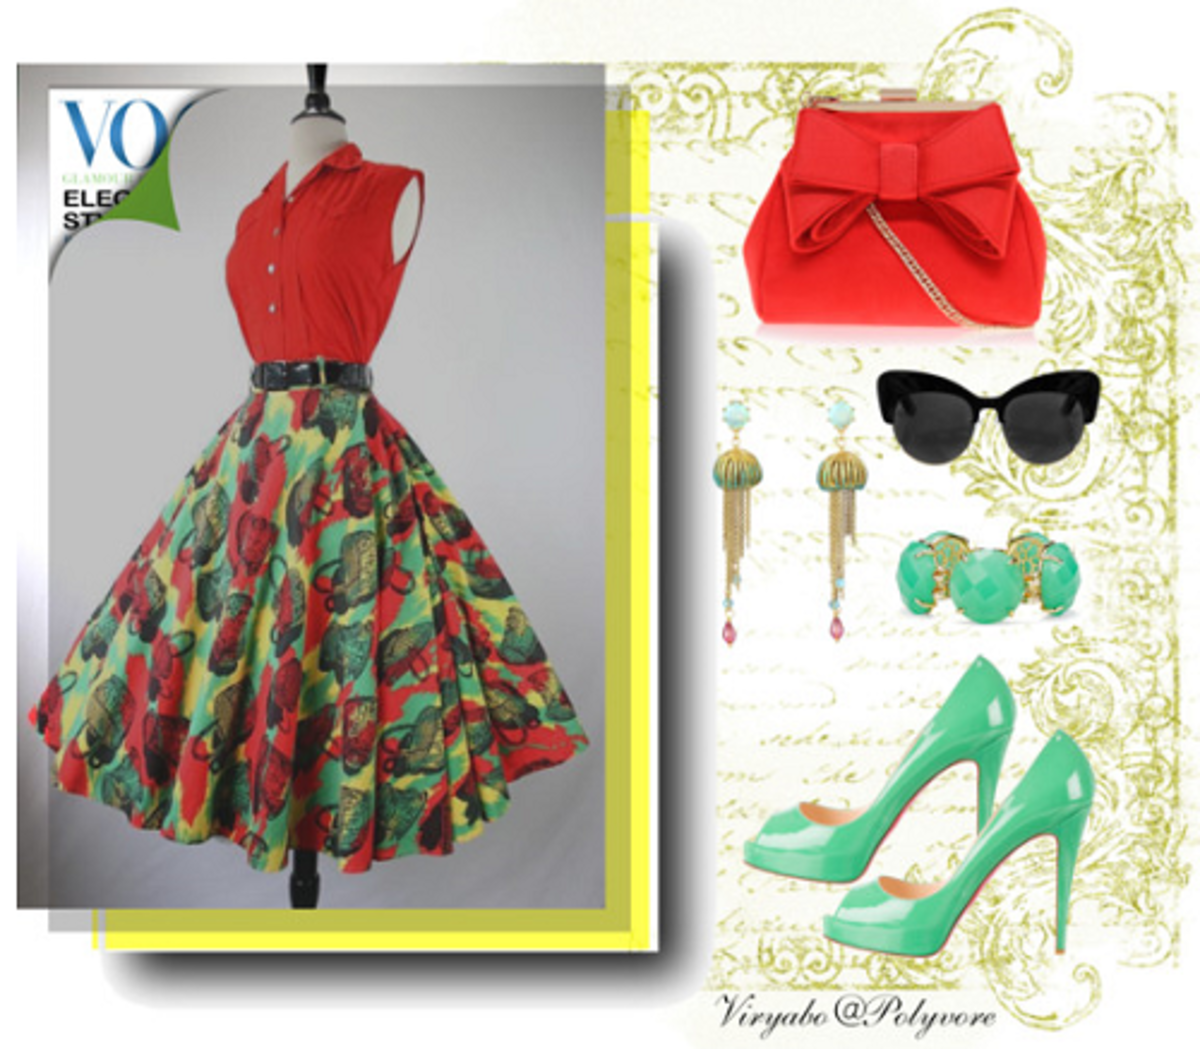 50s Vintage Style Clothing with Modern Fashion Accessories